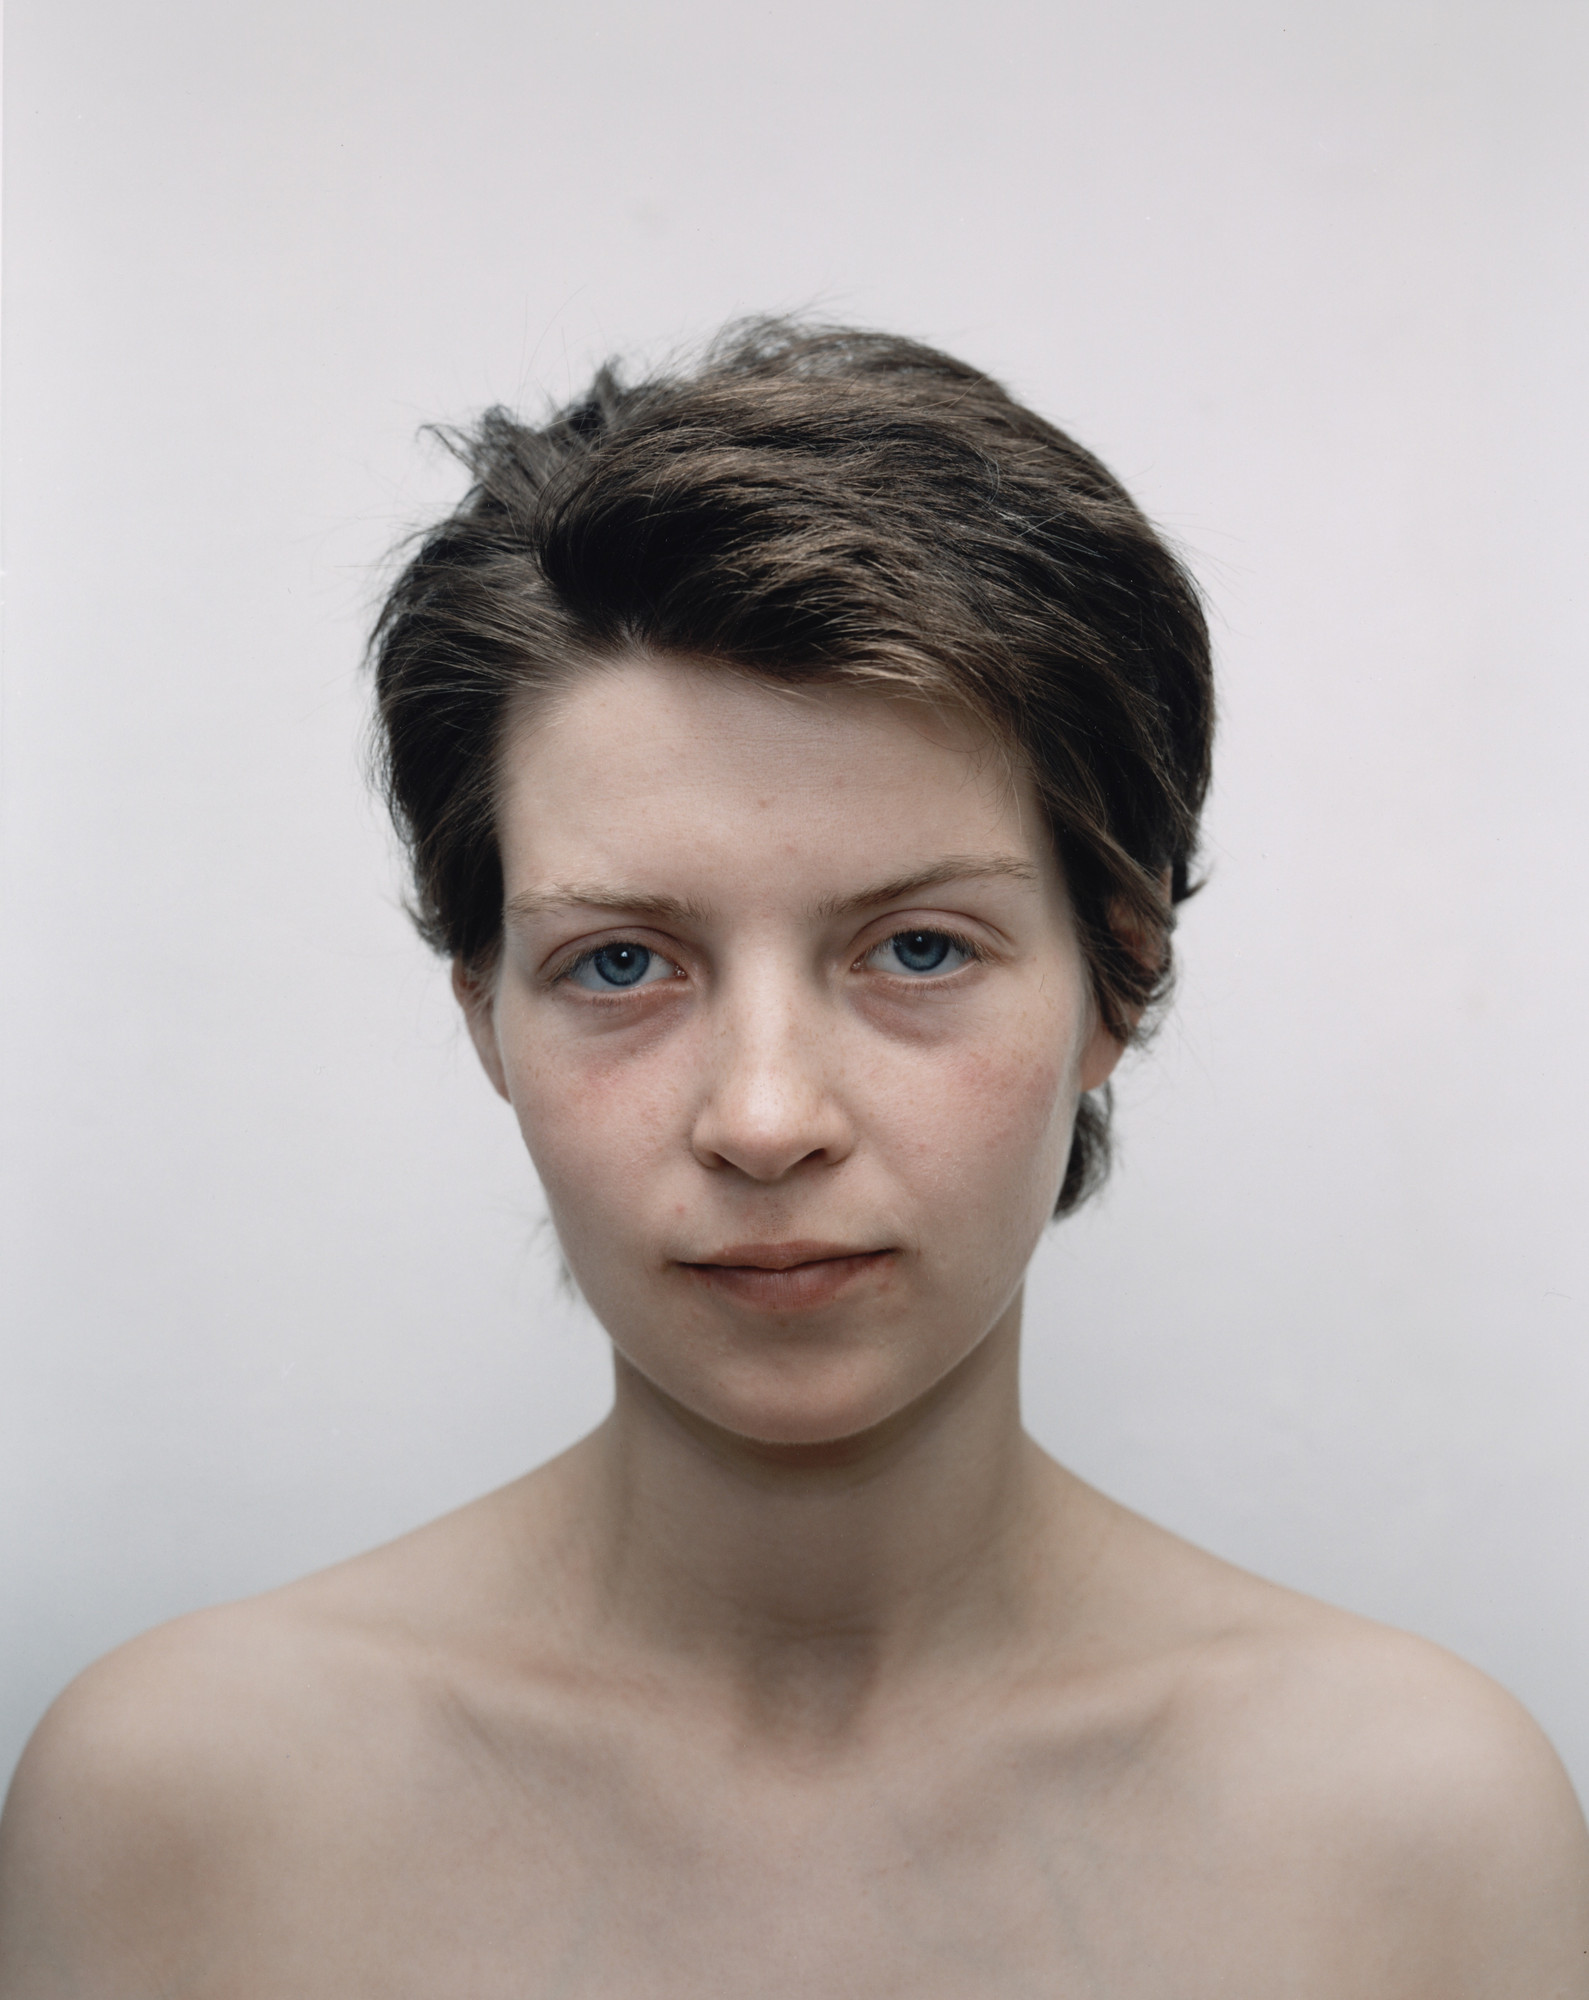 Rineke Dijkstra. Tia, Amsterdam, the Netherlands, 14 November 1994, Tia, Amsterdam, the Netherlands, 23 June 1994. 1994